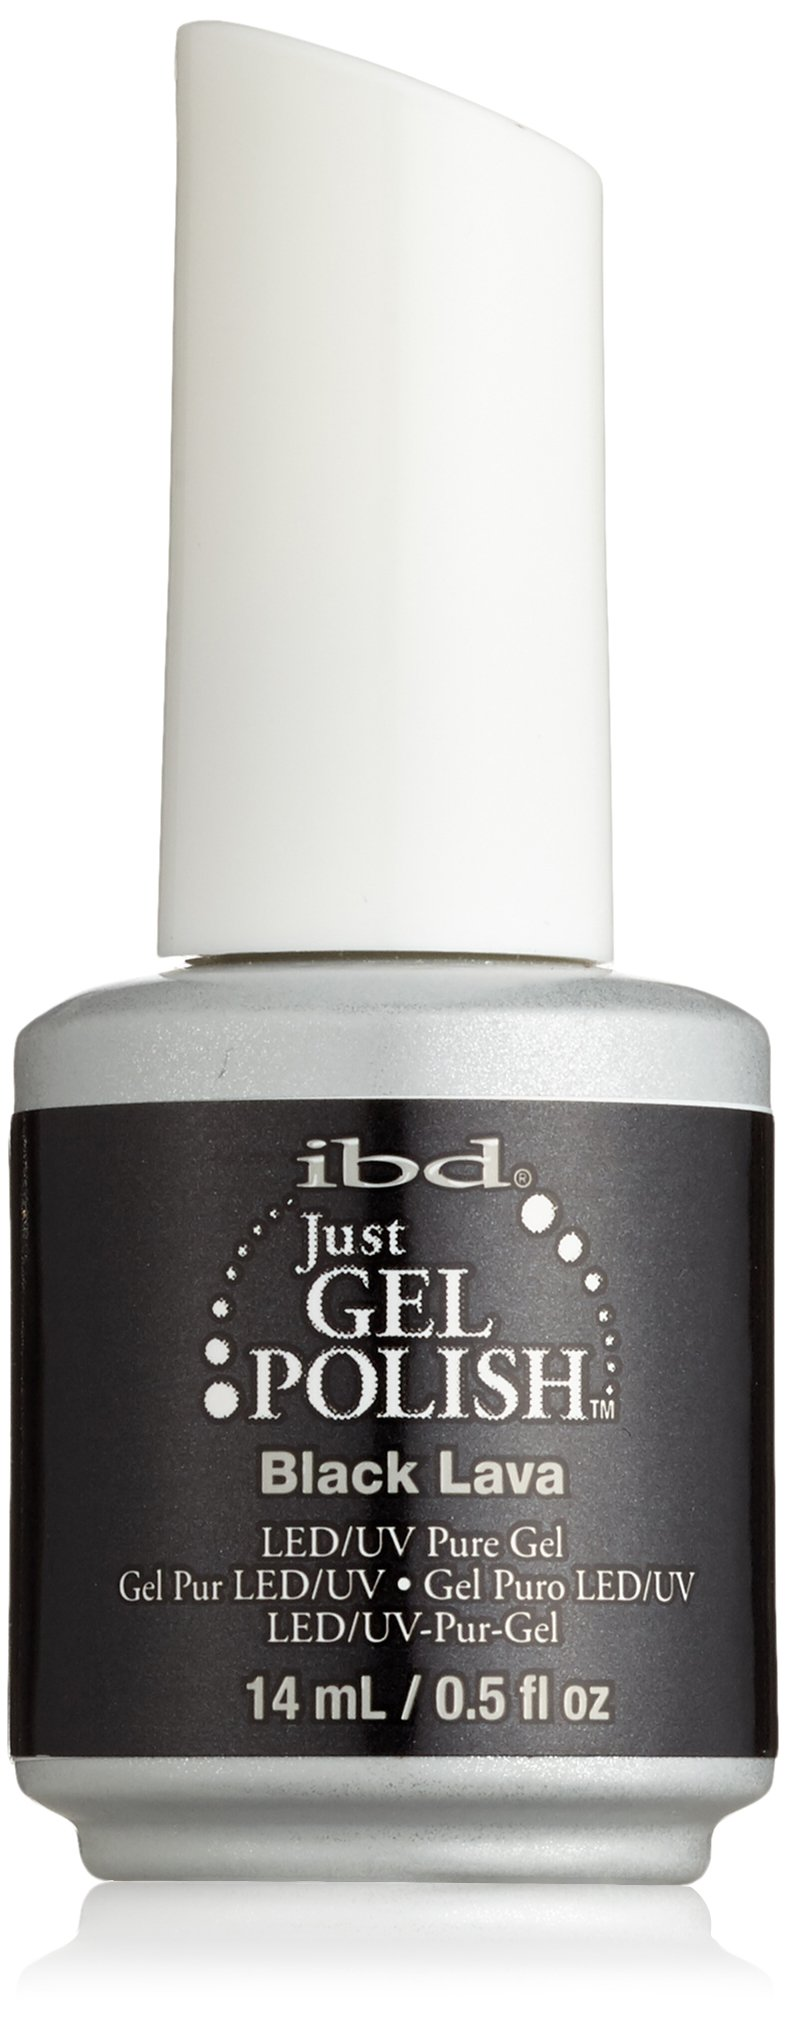 Home ibd just gel polish ibd just gel polish abracadabra - Ibd Just Gel Nail Polish Black Lava 0 5 Fluid Ounce